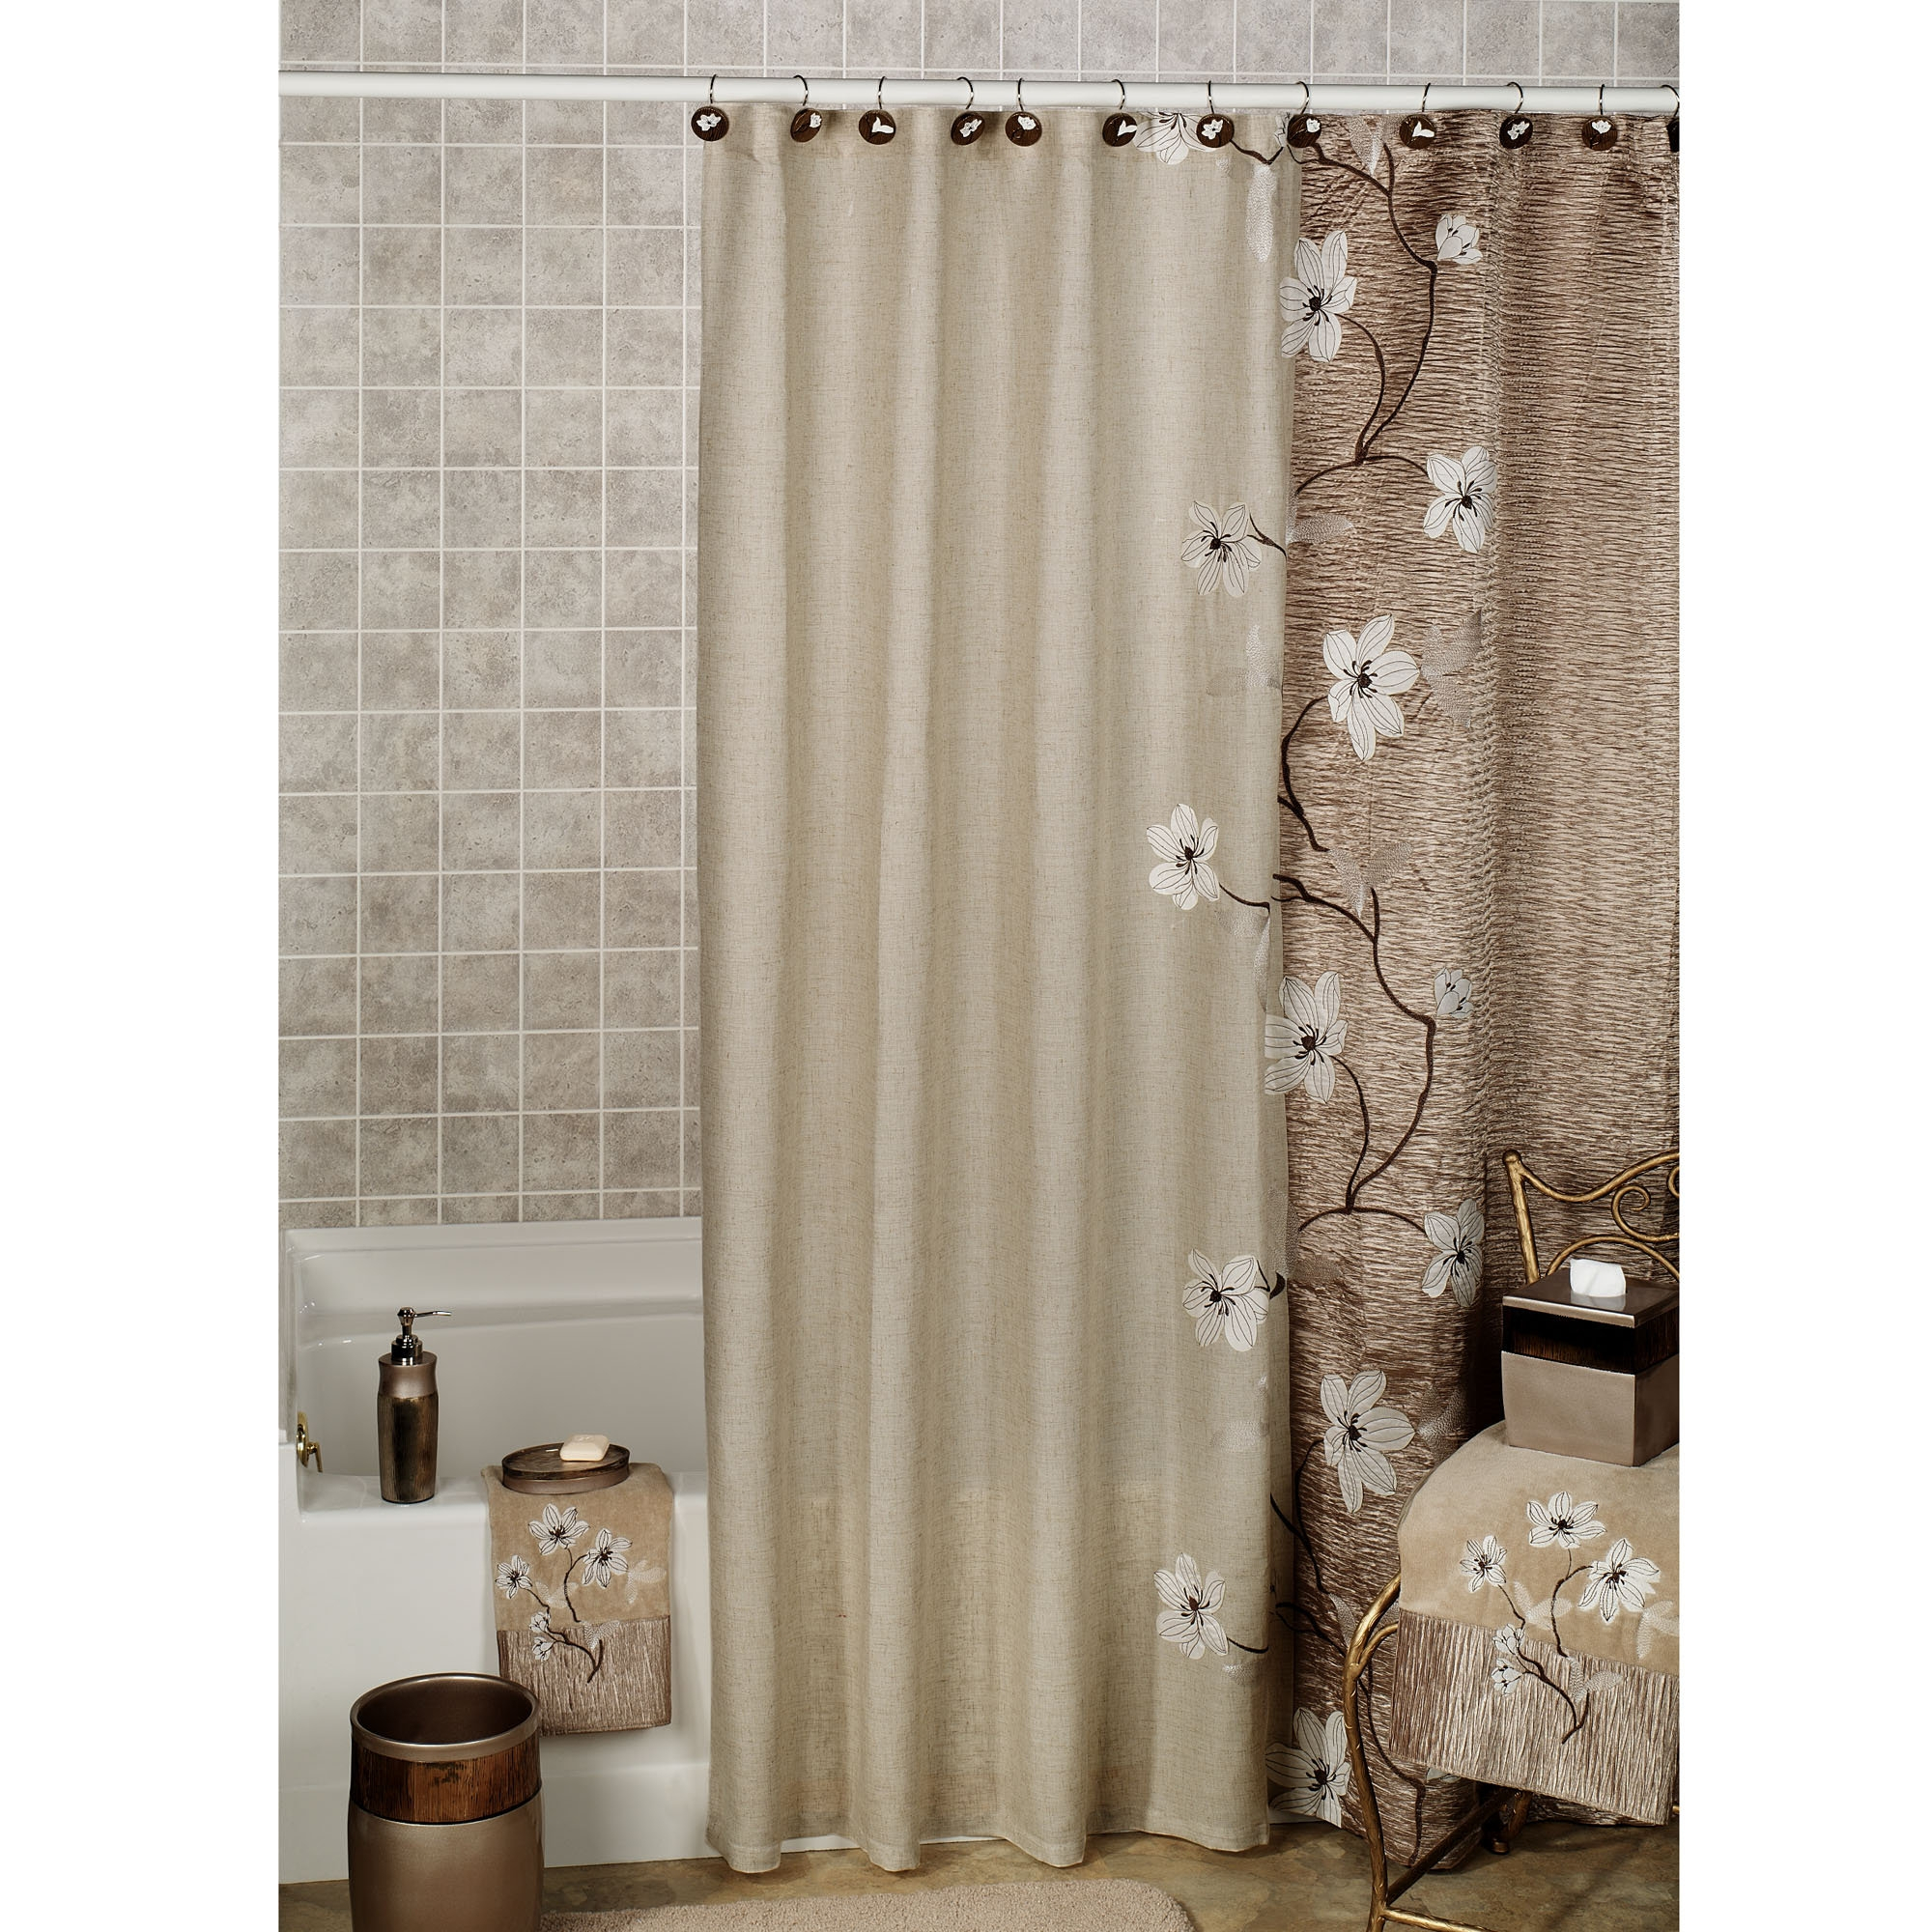 Croscill Spa Leaf Shower Curtain Hooks Shower Curtain within dimensions  2000 X 2000